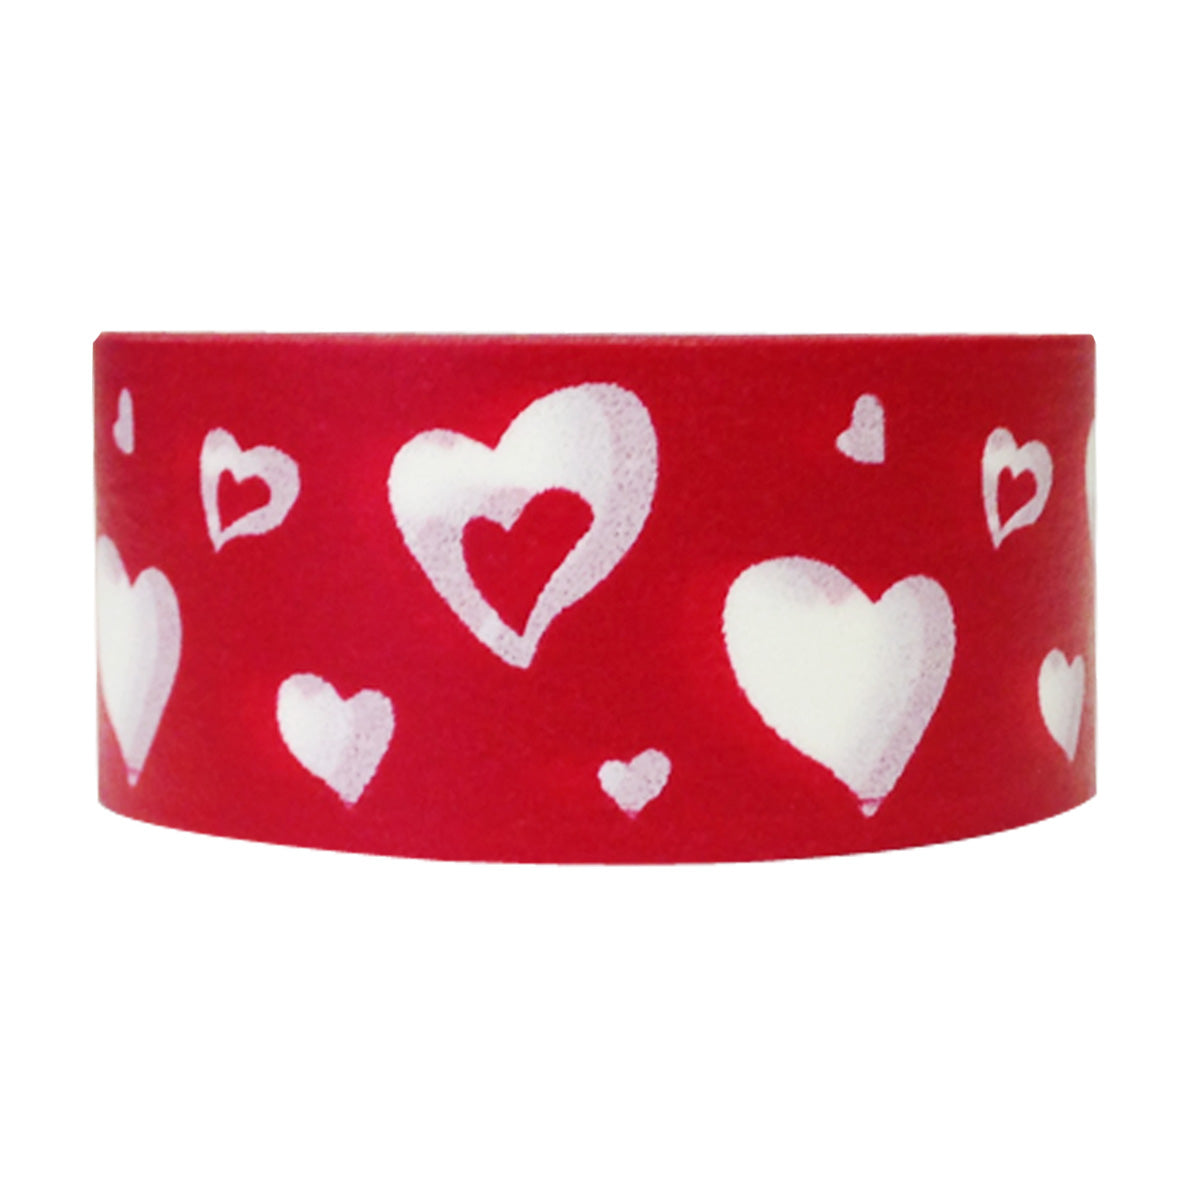 Wrapables Hearts & Sweets Washi Masking Tape, Dancing Hearts